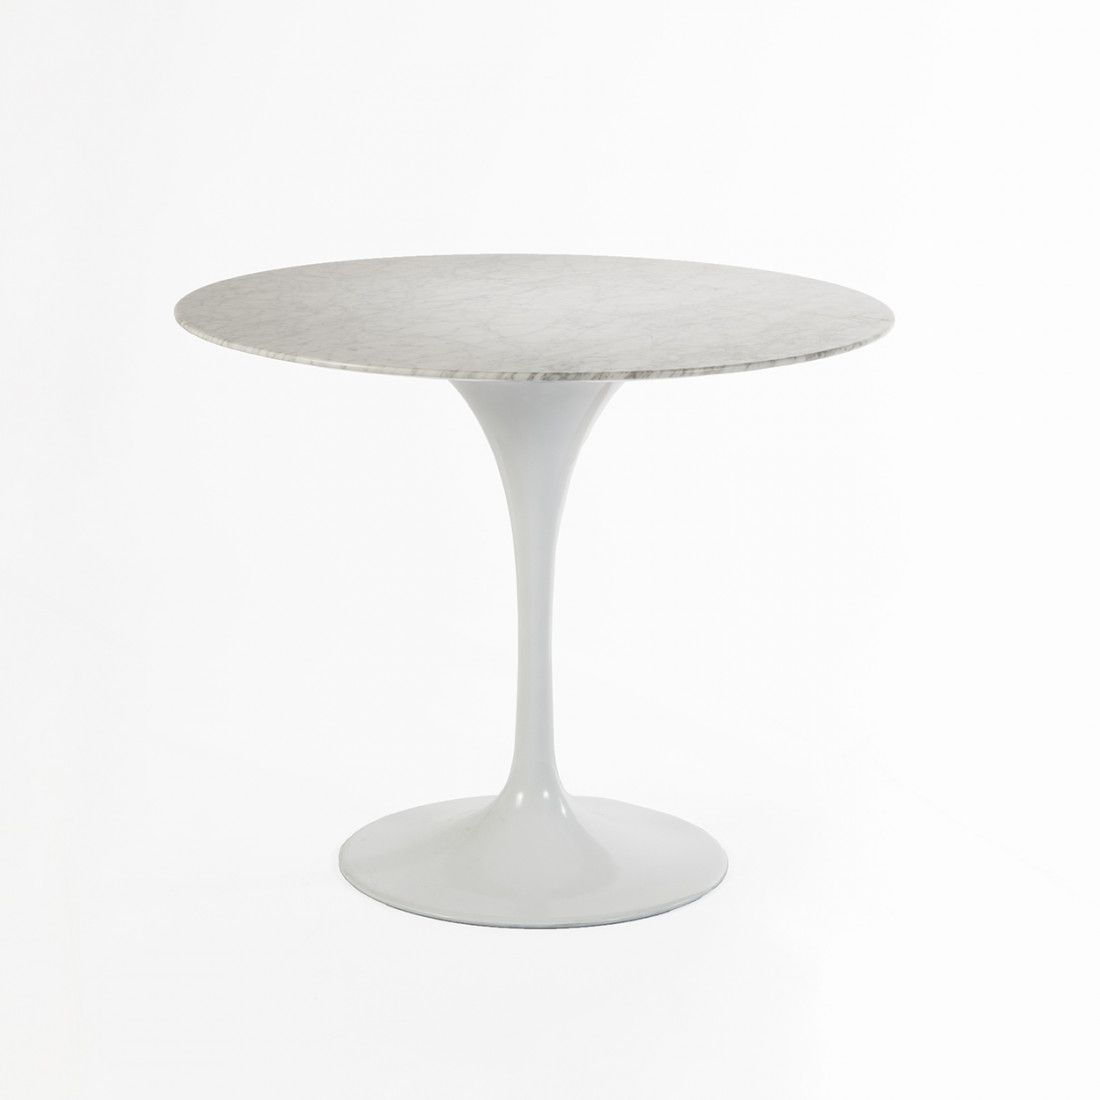 36 Tulip Table Carrara Marble Tulip Dining Table 36 Quot Round J Andd Mt